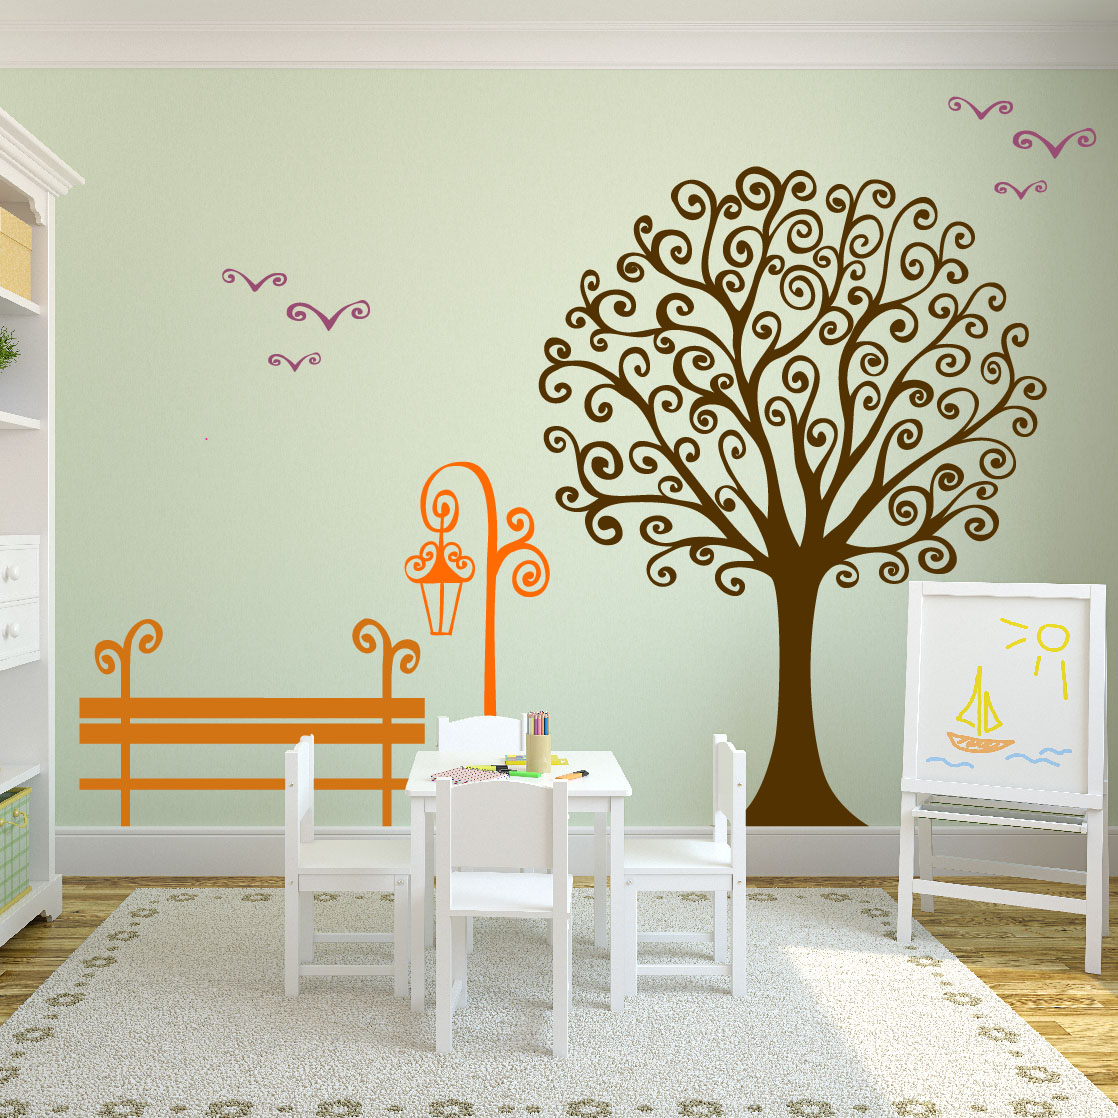 1343-swirly-tree-wall-decal-play-room-outdoors.jpg